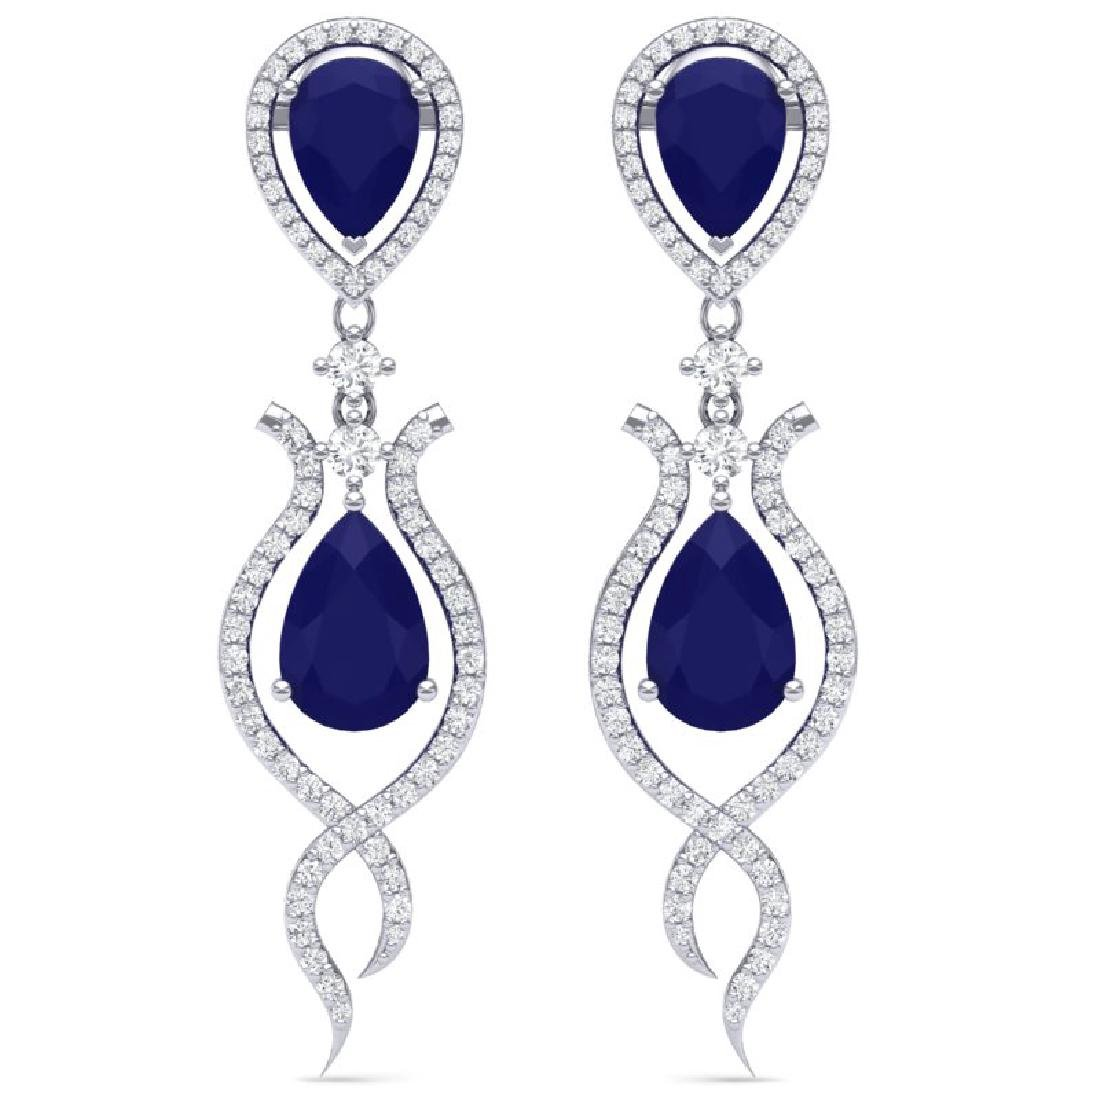 16.57 CTW Royalty Sapphire & VS Diamond Earrings 18K